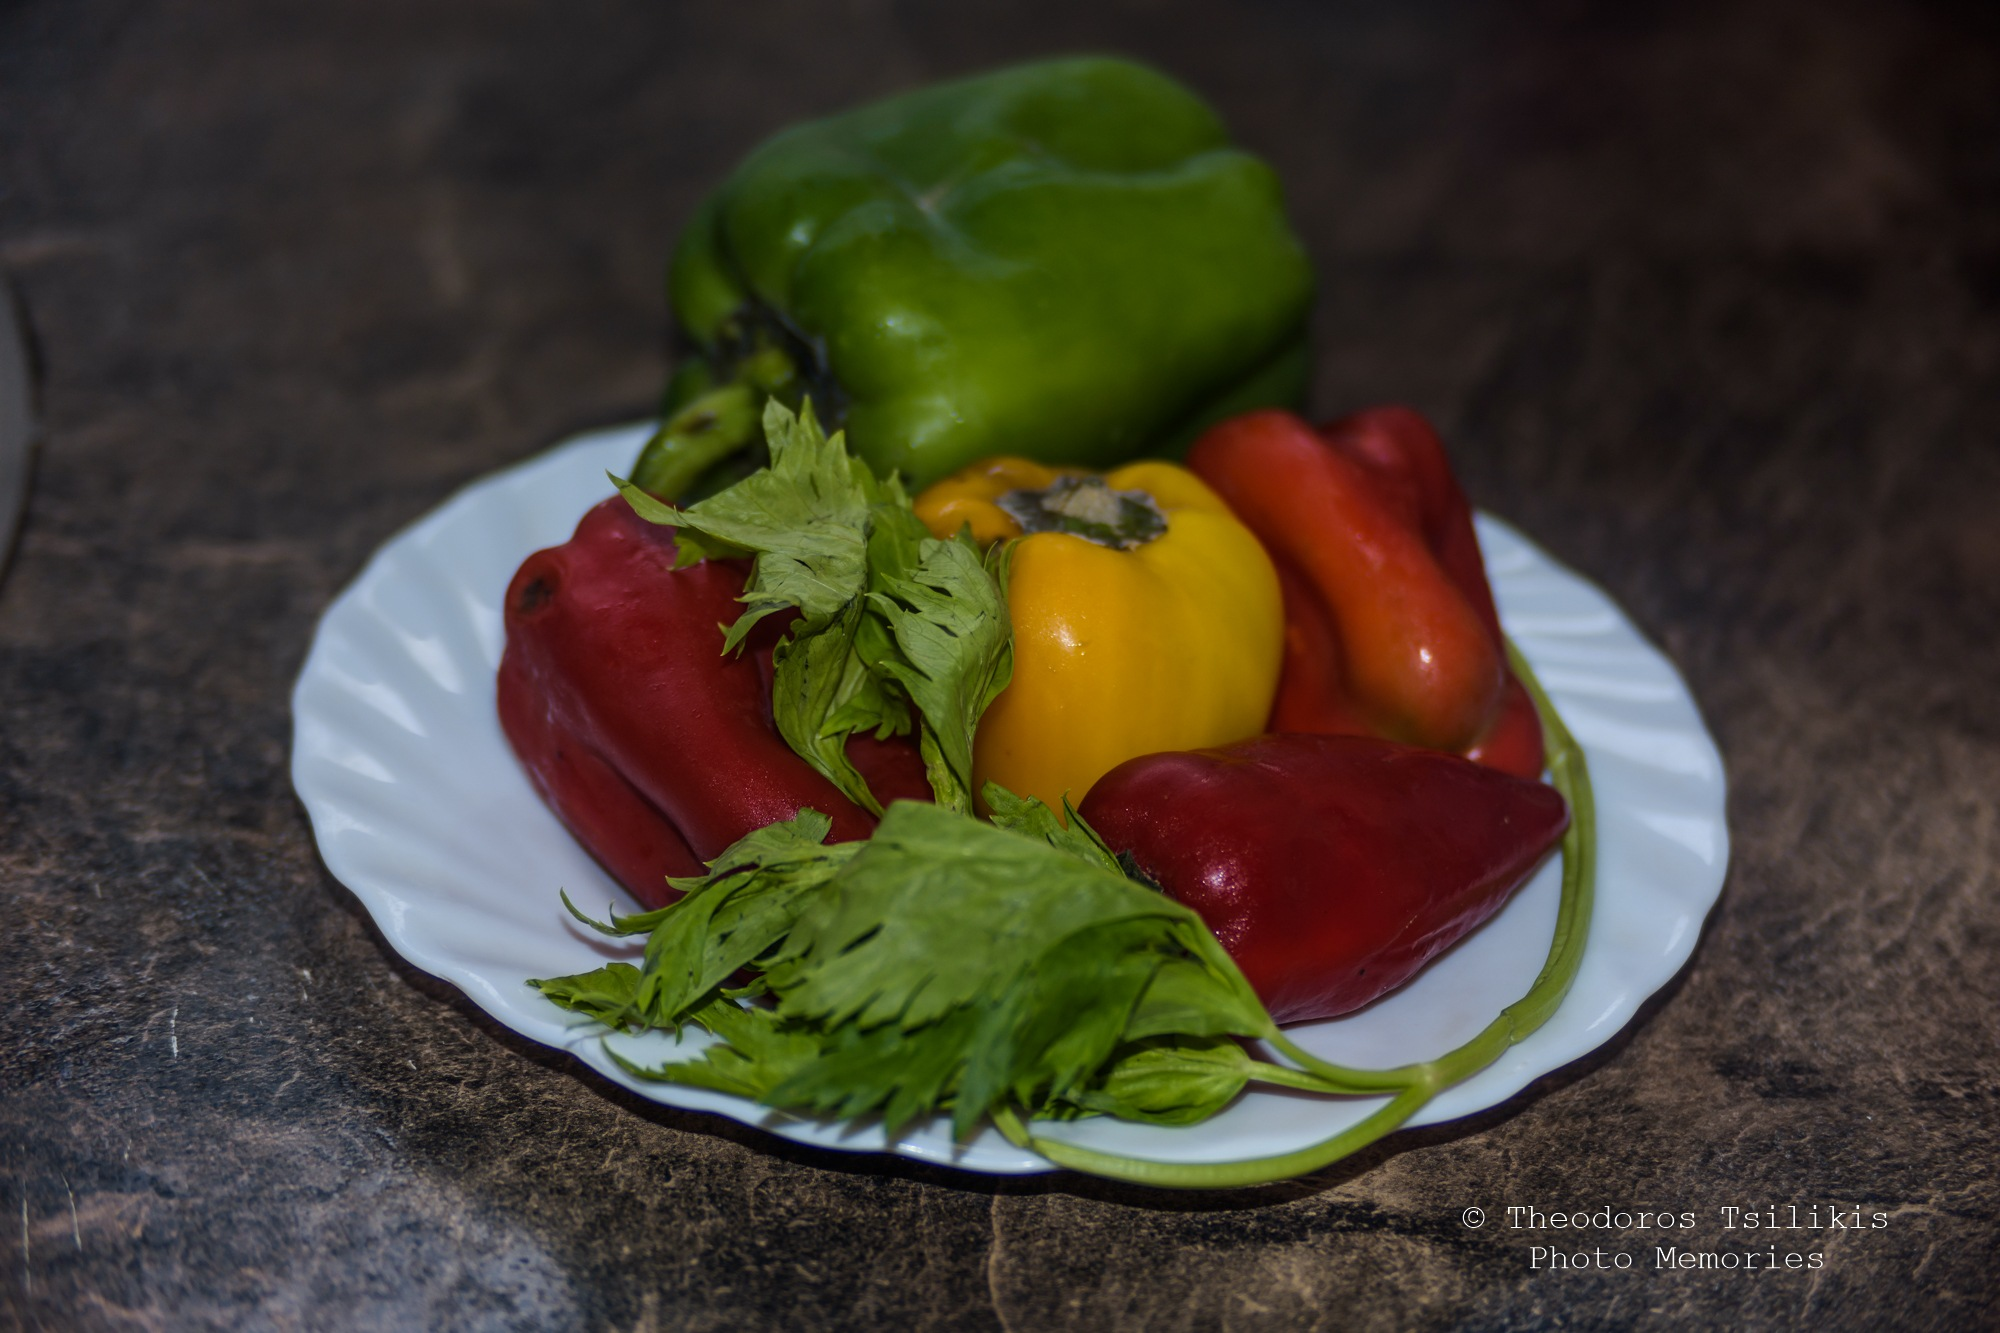 colourful plate by Theodoros Tsilikis